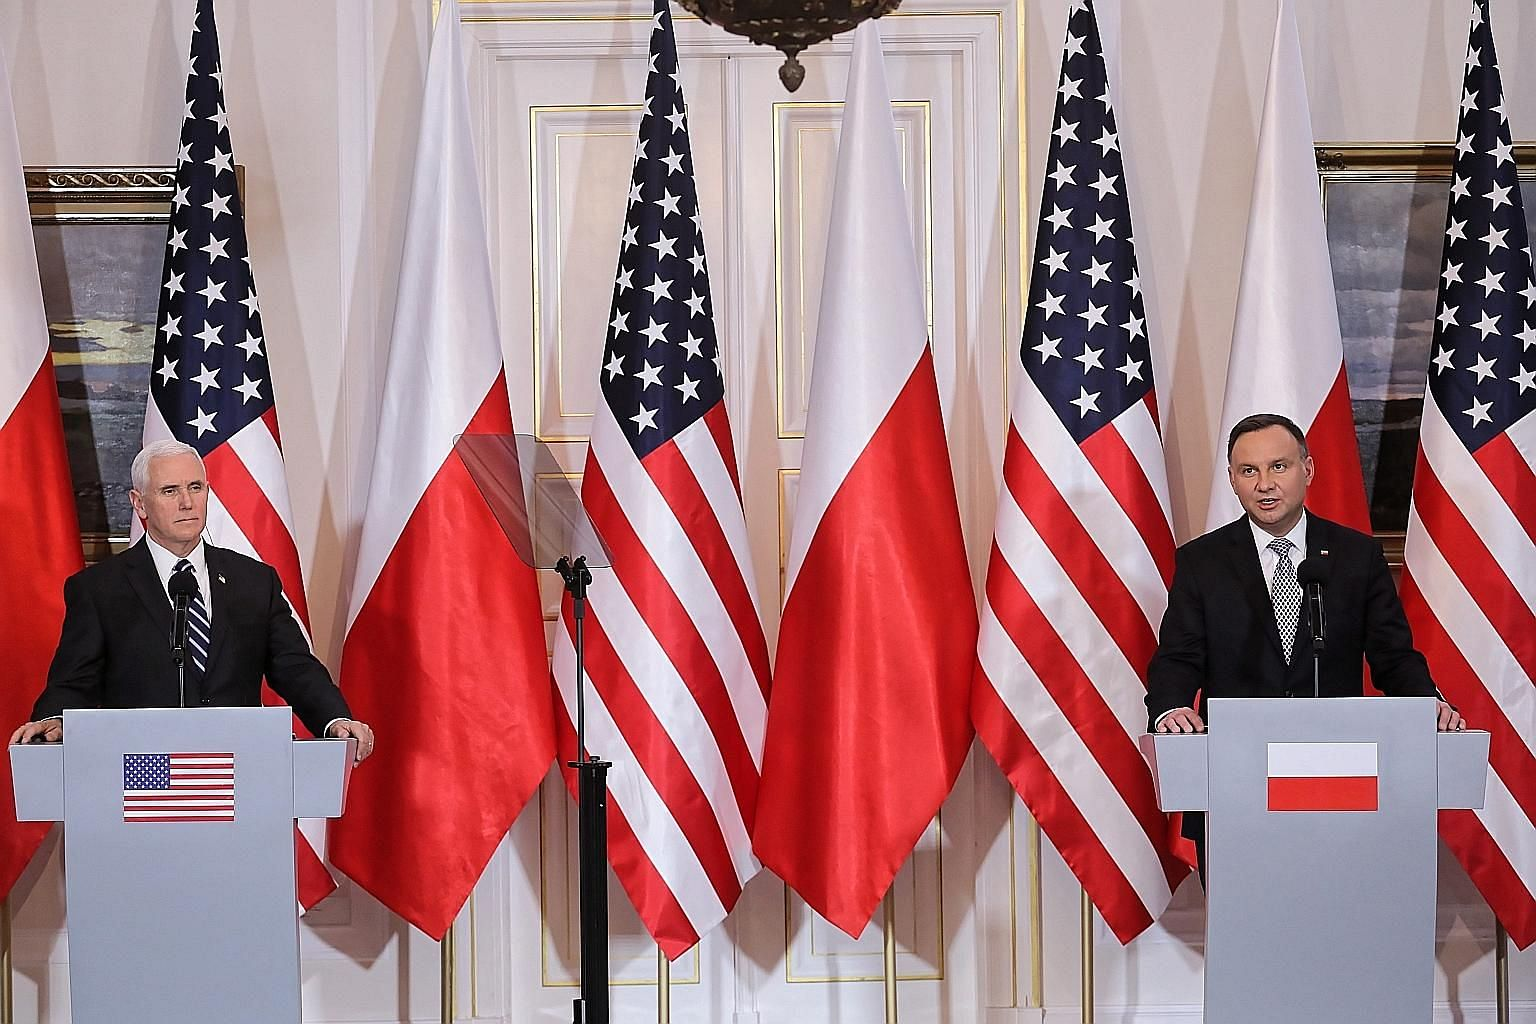 Polish President Andrzej Duda (far right) and US Vice-President Mike Pence addressing the press in Warsaw on Wednesday. Fuelled by concerns that Huawei products could be used by China for espionage, the US has been convincing its allies to exclude te